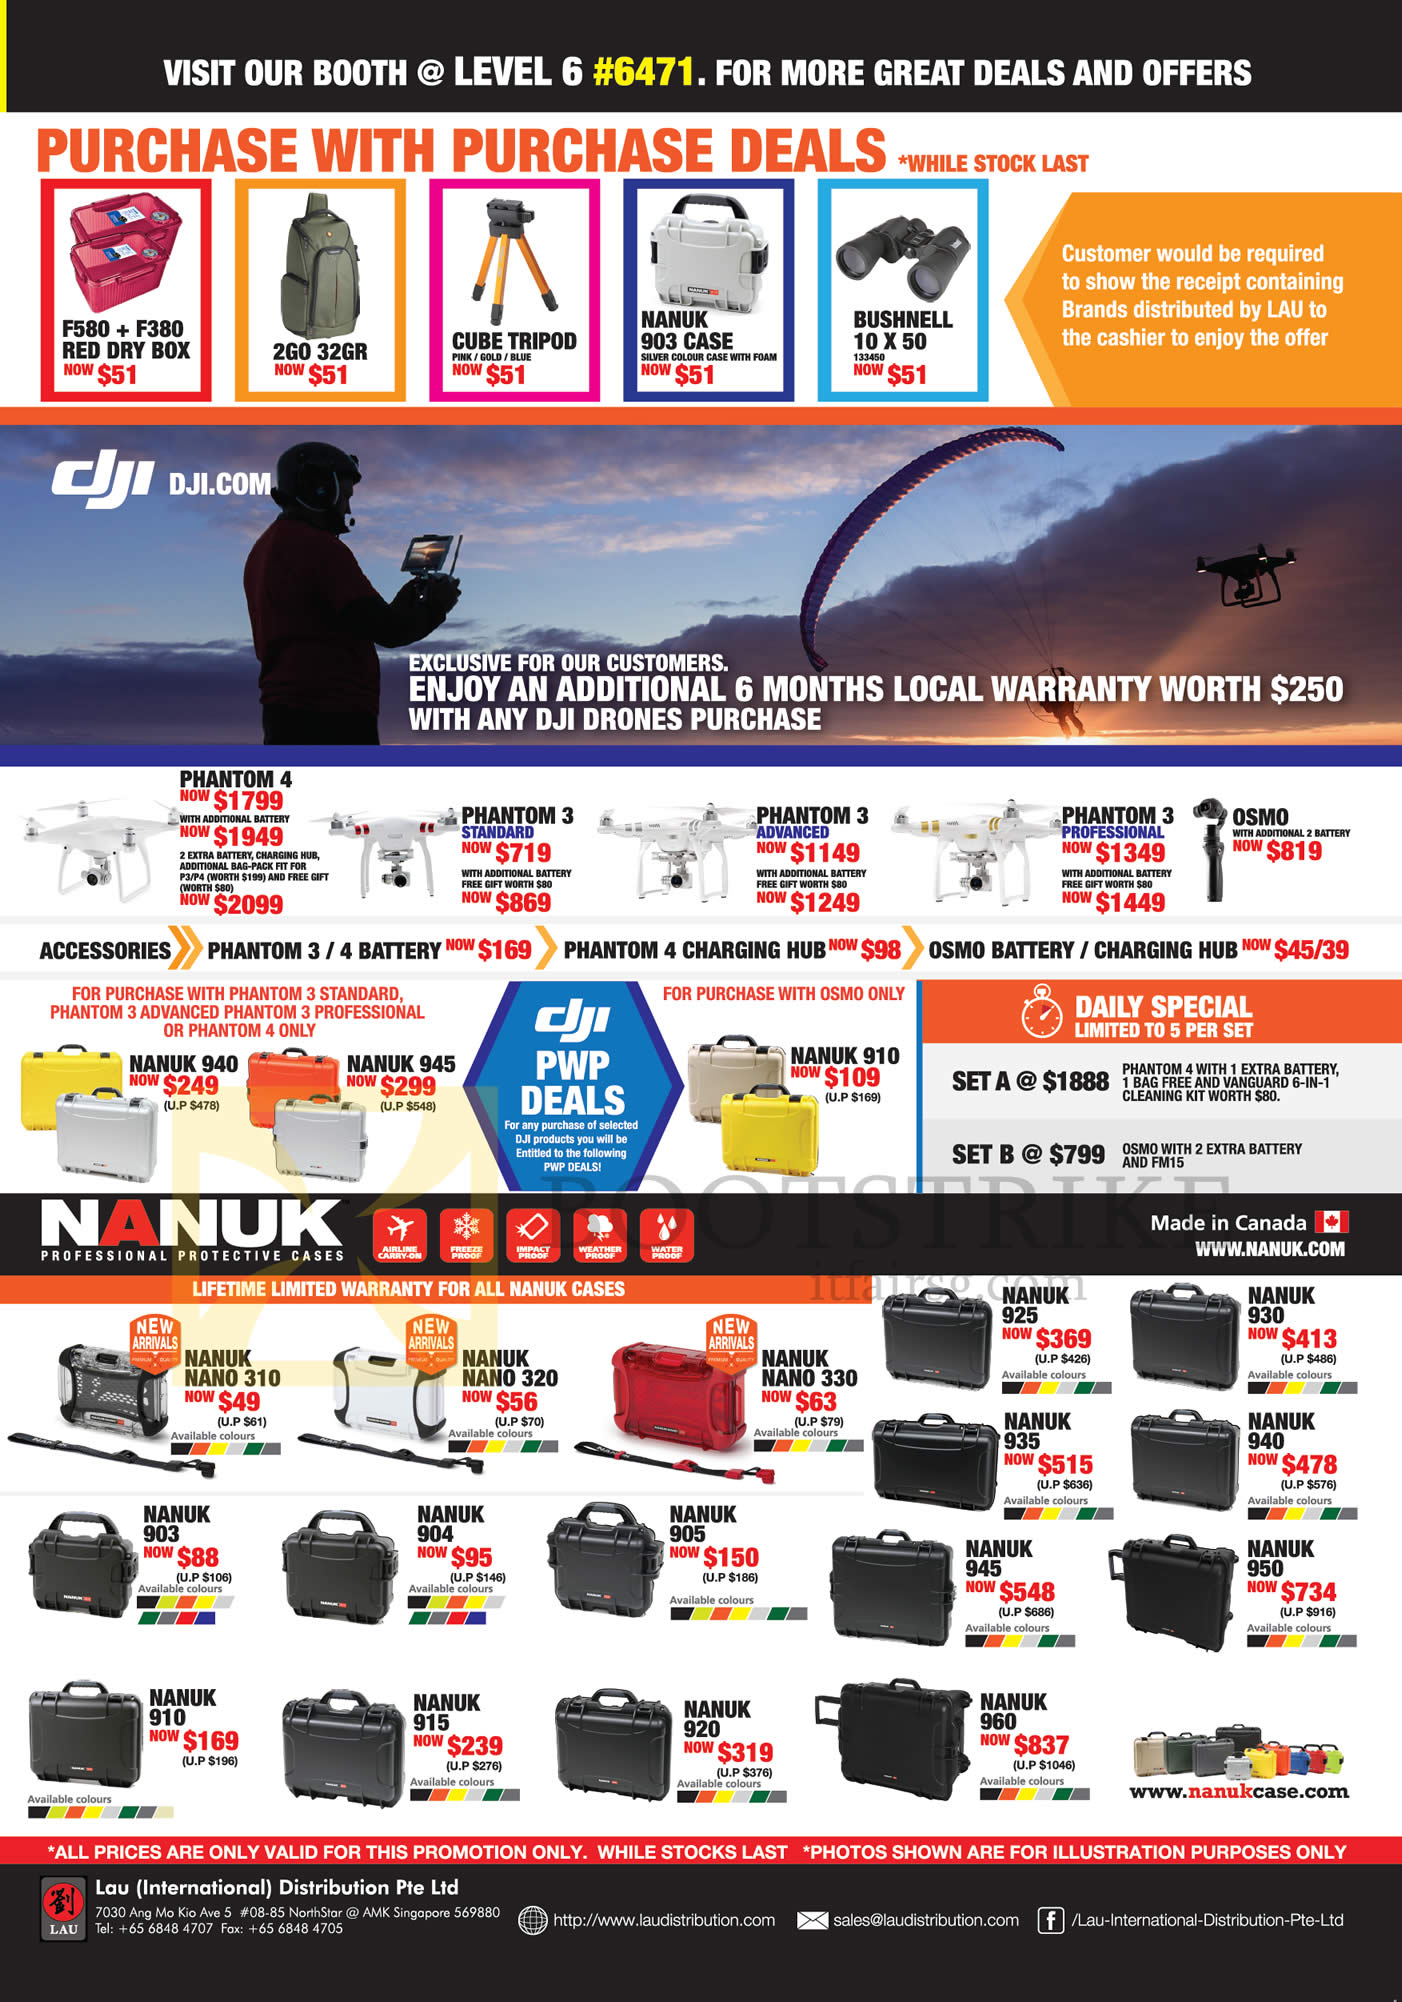 COMEX 2016 price list image brochure of Lau Intl Dji Drones, Purchase-with-Purchase, Nanuk Cases, Nano